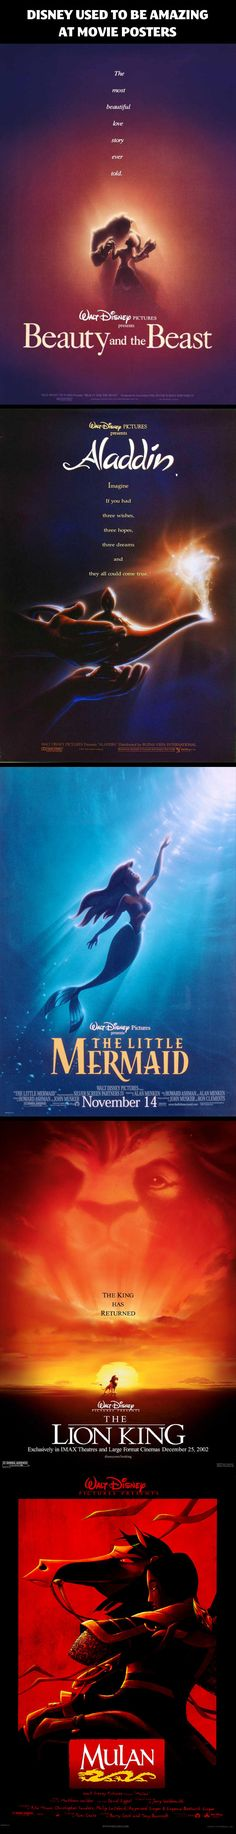 Disney used to be amazing at movie posters…